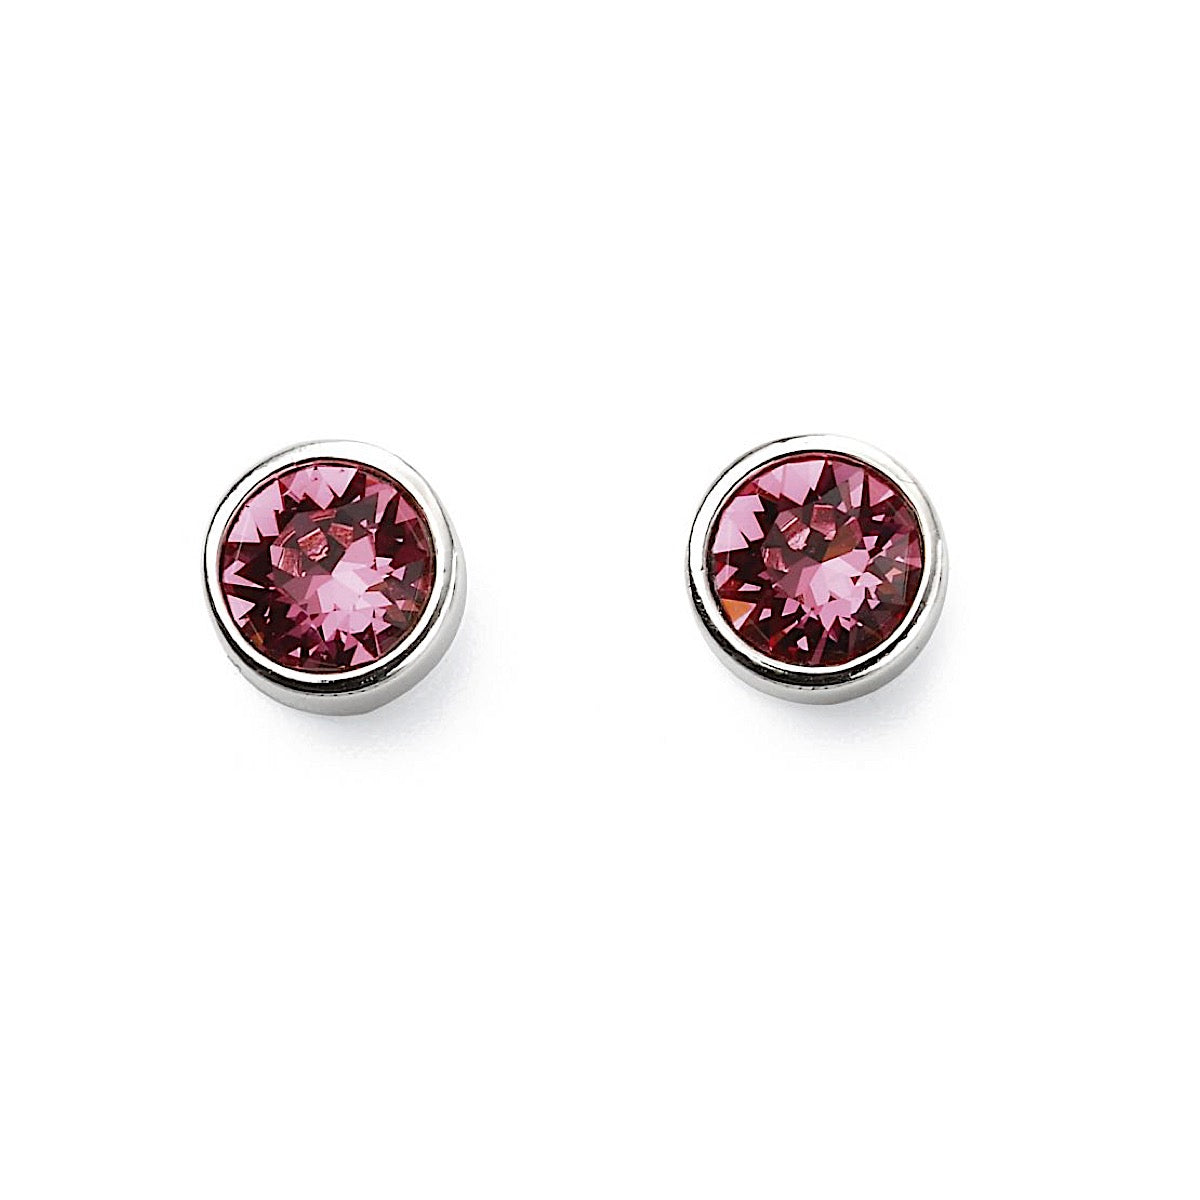 Beginnings October Birthstone Earrings | More Than Just at Gift | Narborough Hall